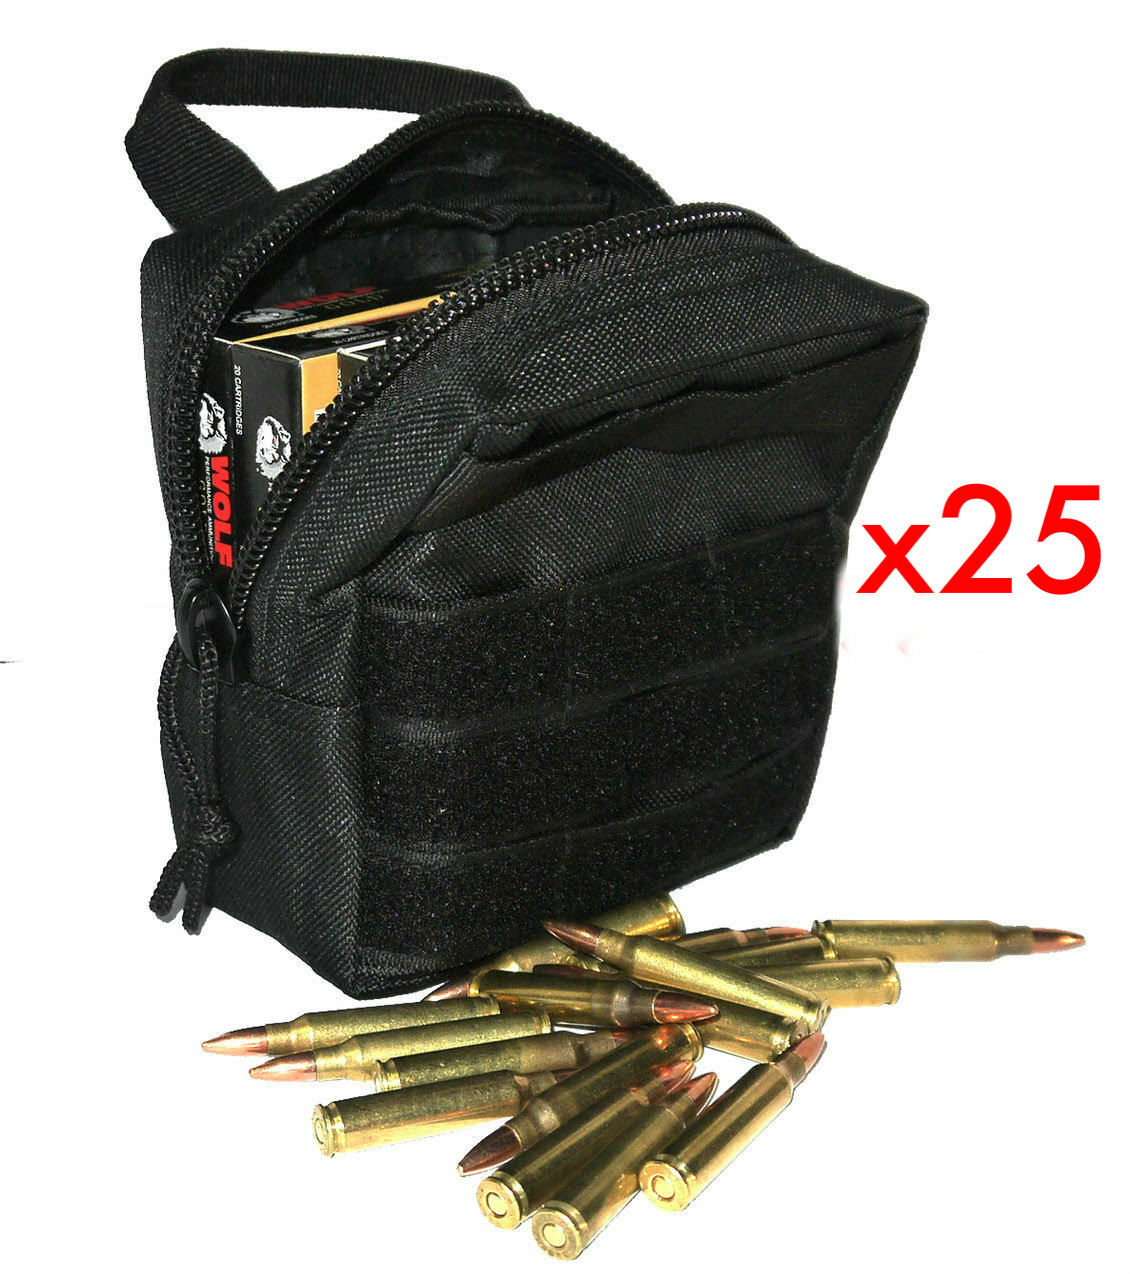 (25) .556 REMINGTON AMMO MODULAR MOLLE UTILITY POUCHES FRONT HOOK LOOP STRAP